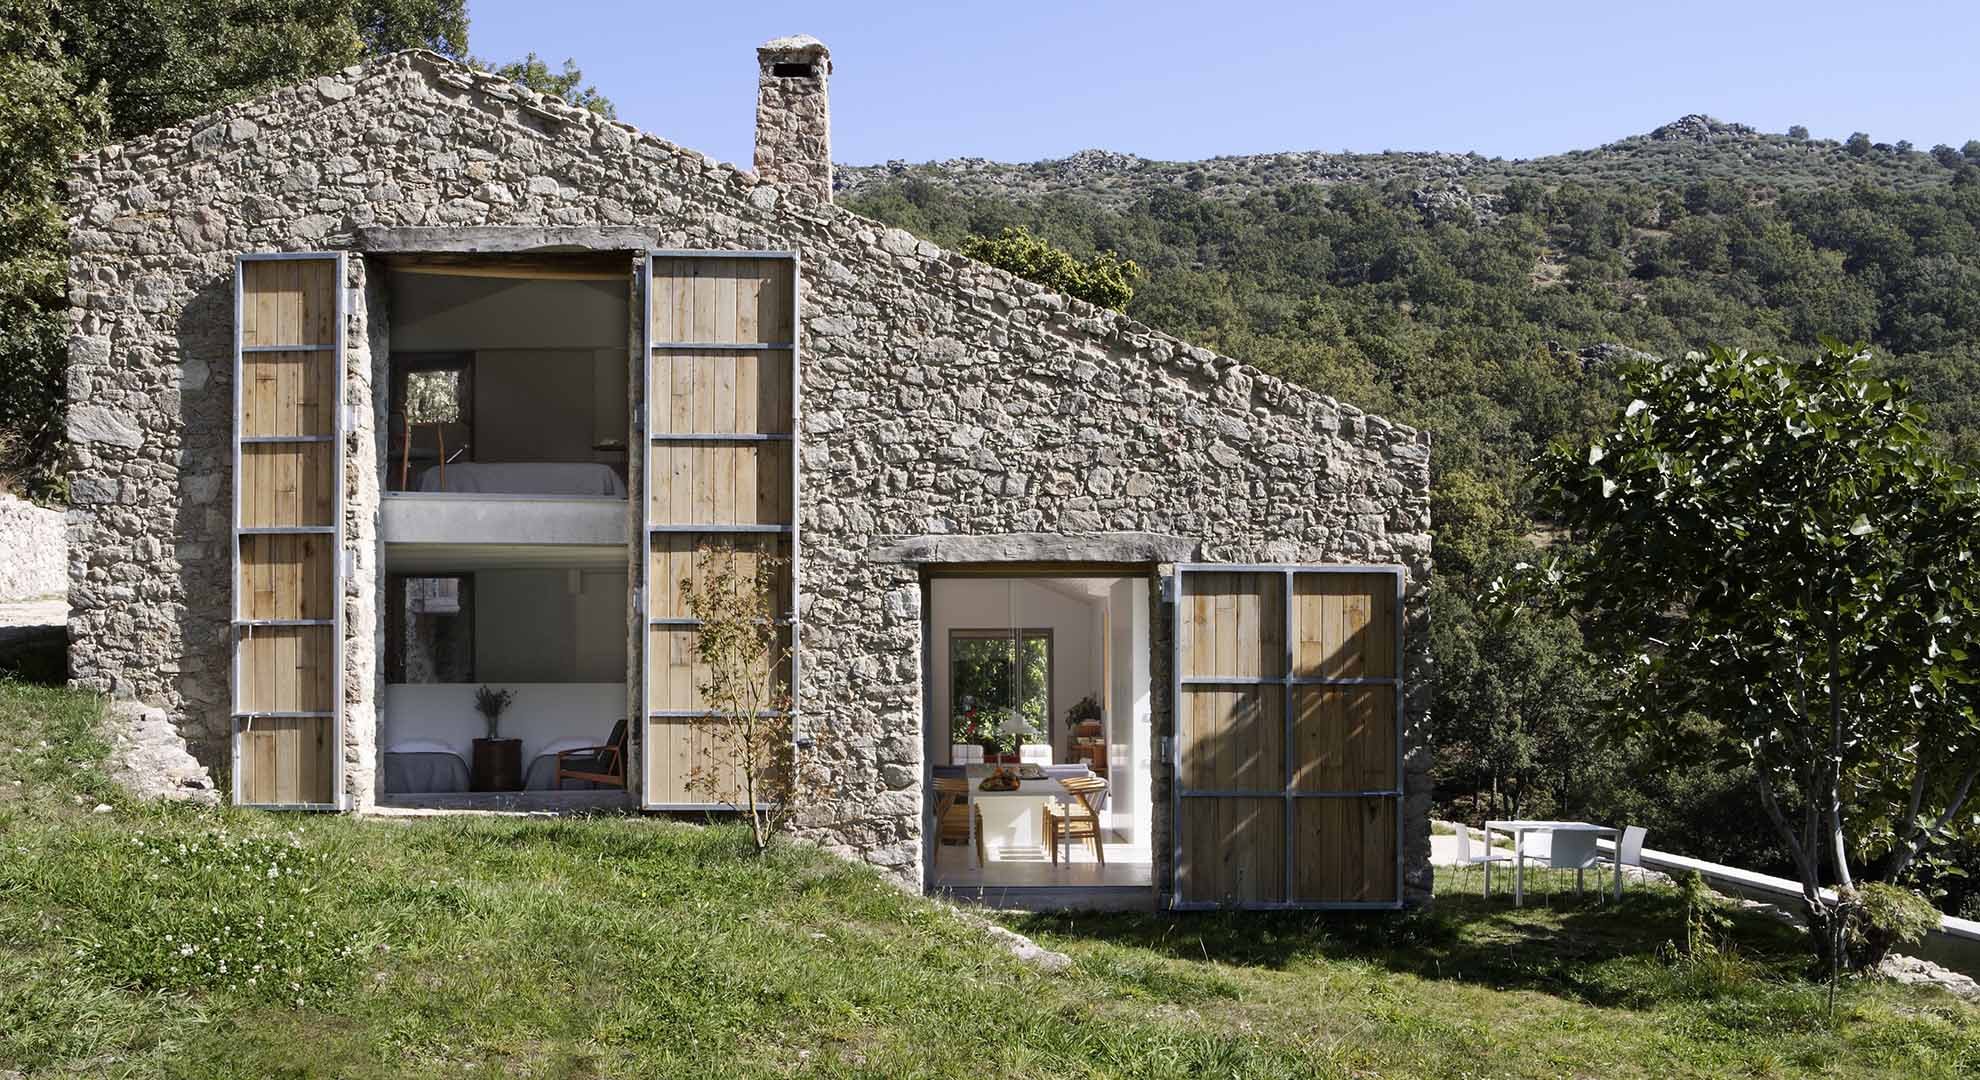 Sustainable architecture holiday home by Ábaton Studio